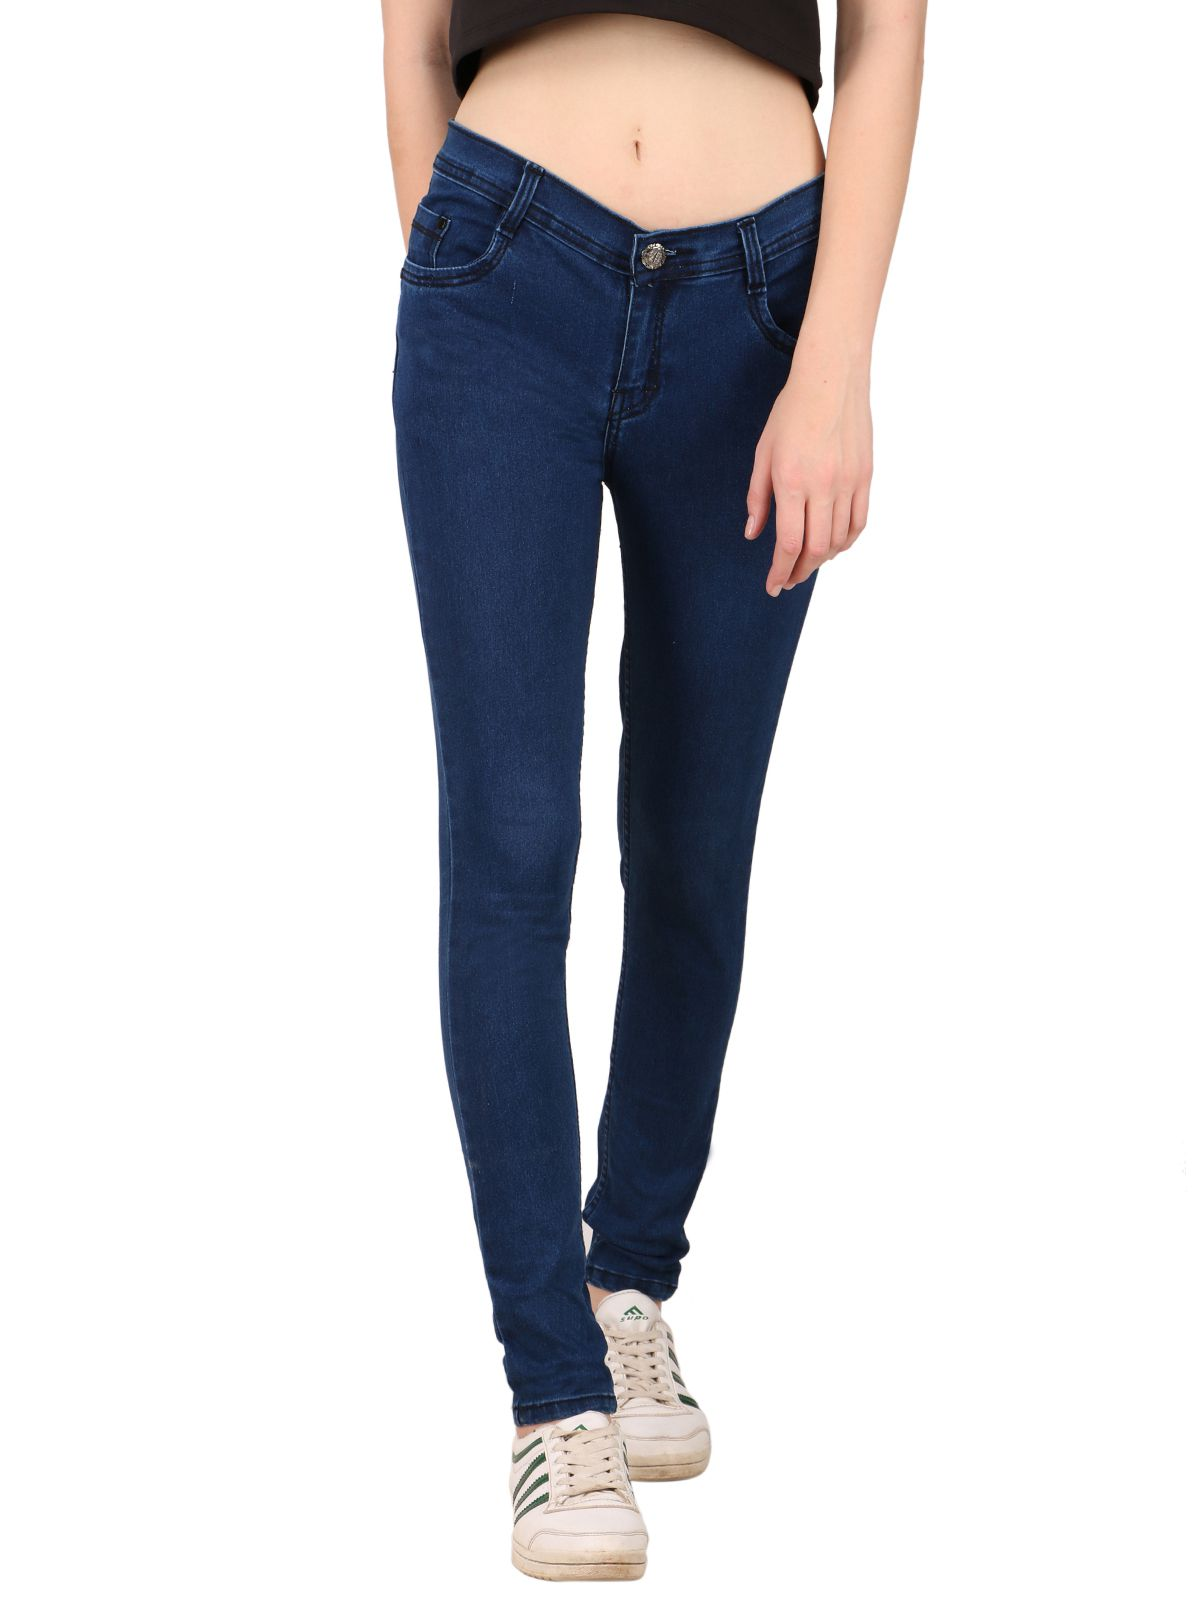 KA Fashion Denim Jeans - Blue